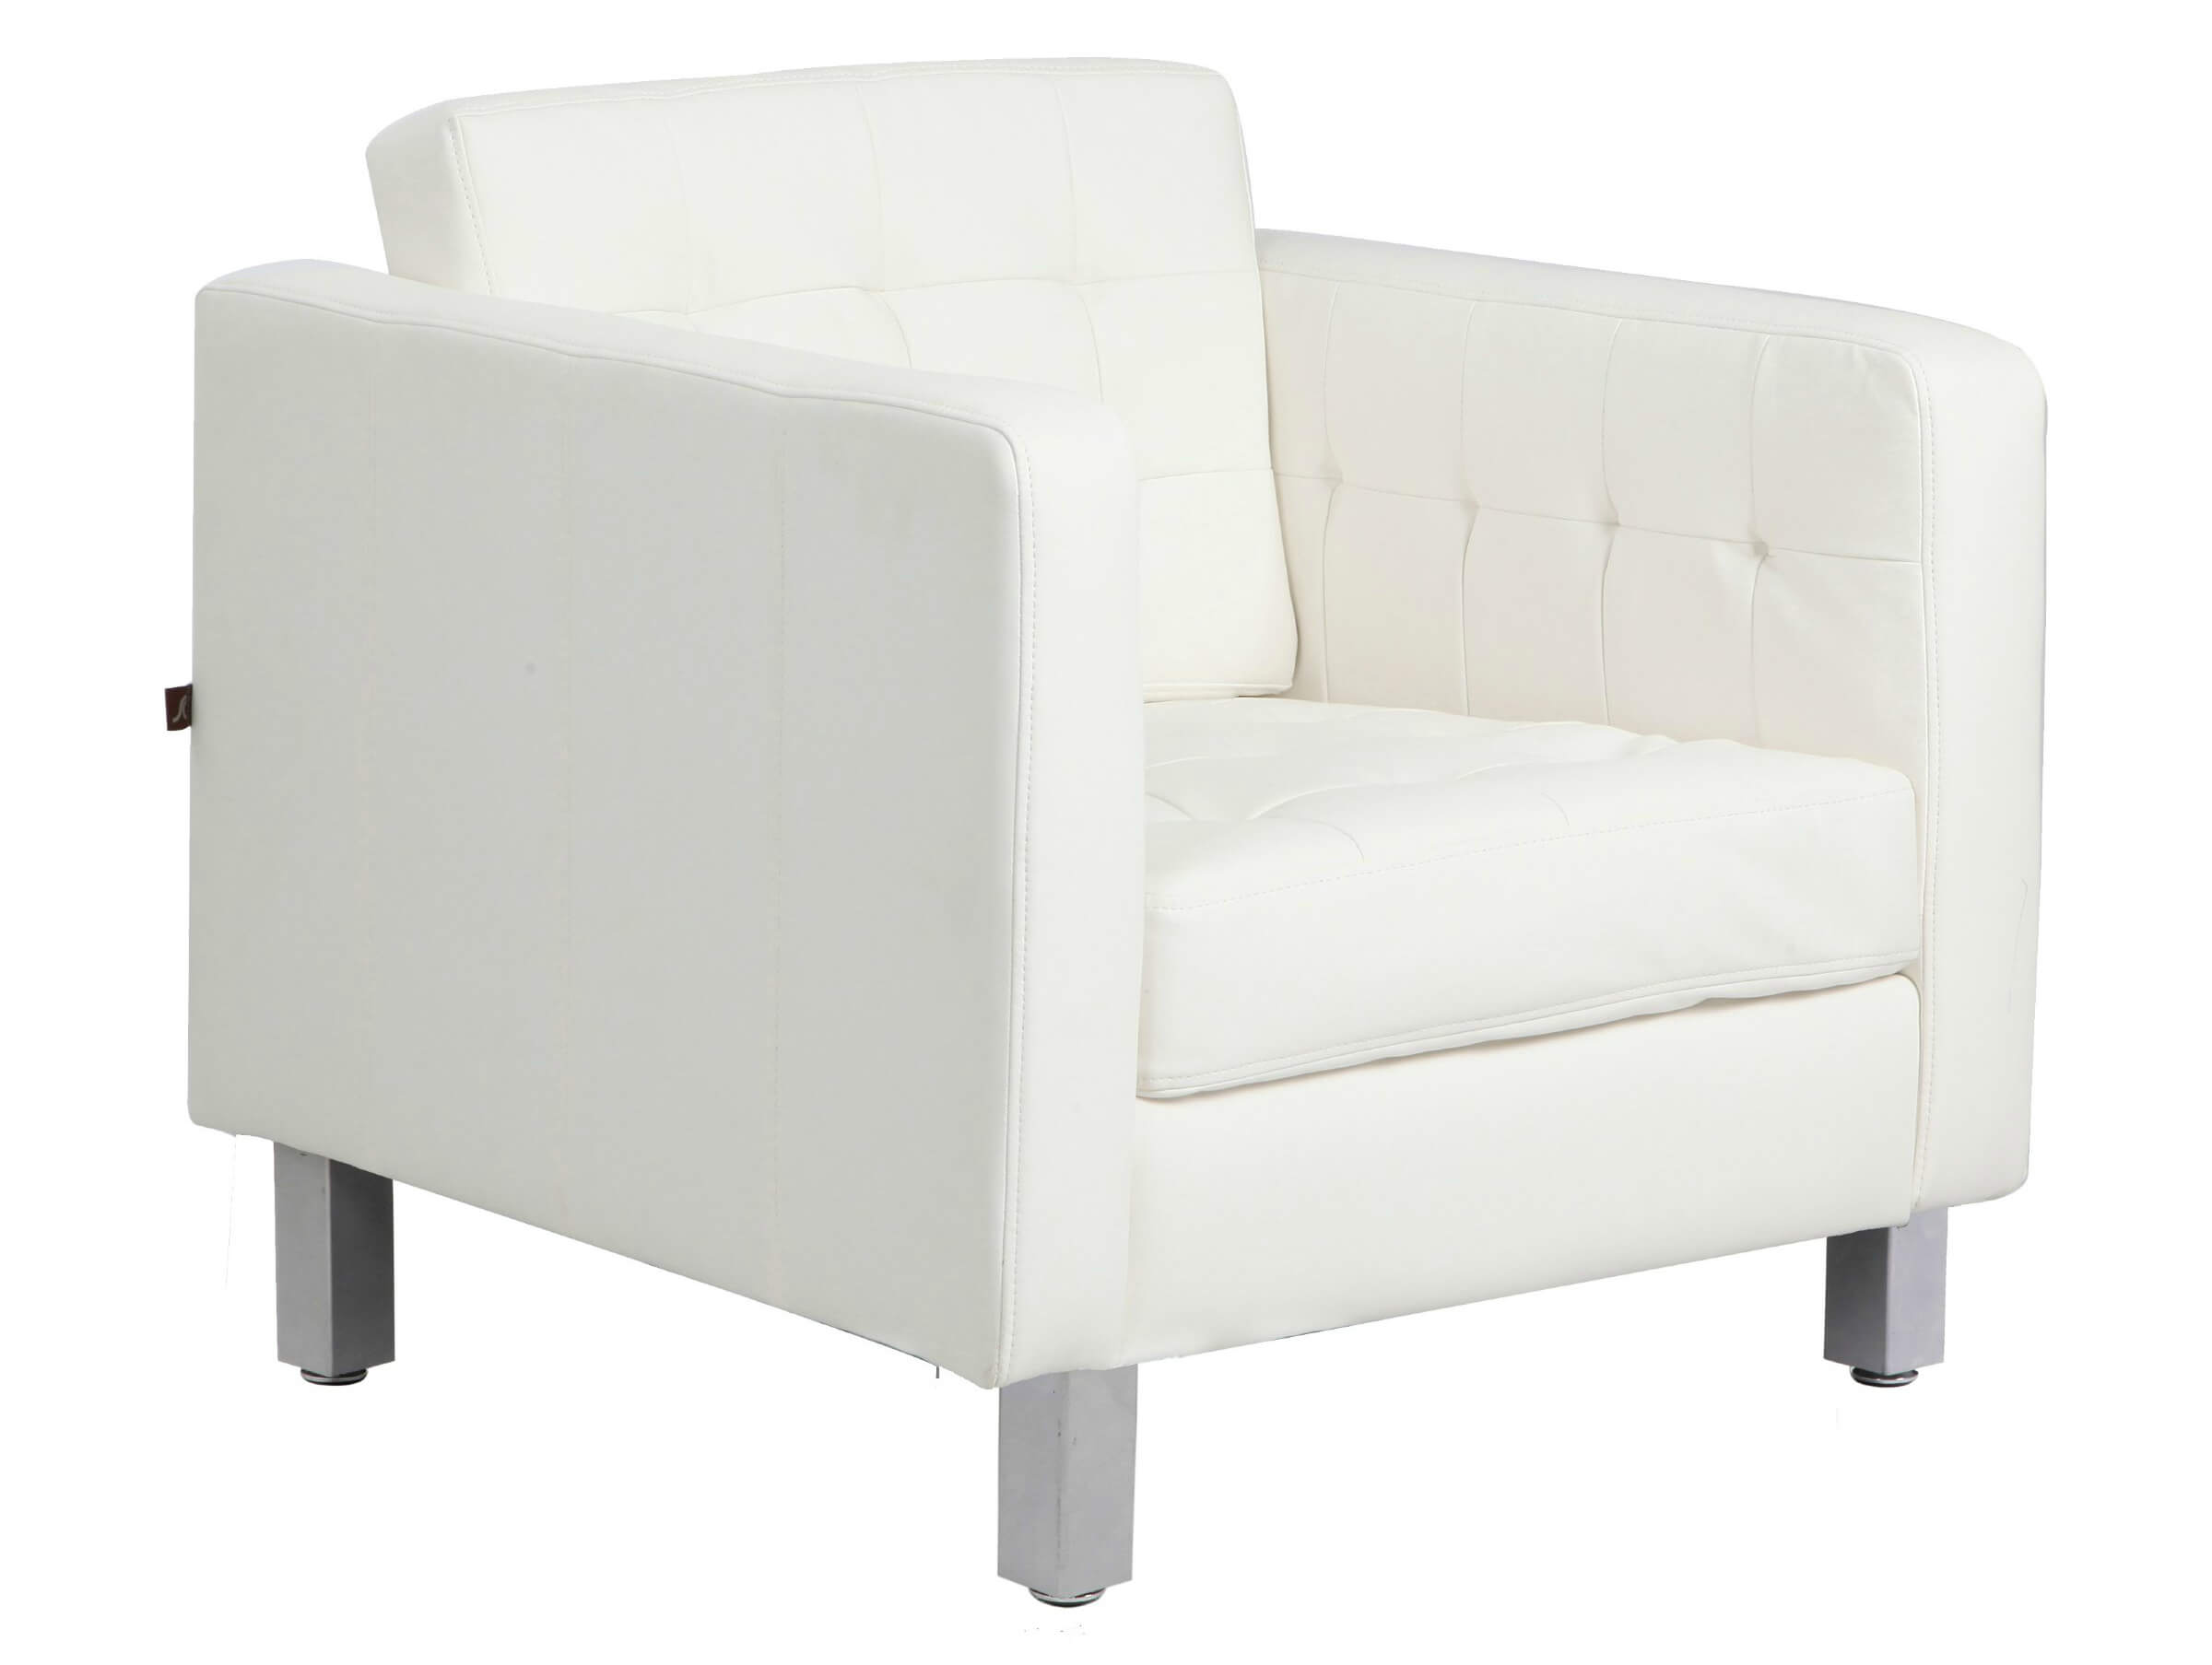 white club chairs ergonomic chair insert 37 modern accent for the living room buttoned bonded leather design of this rissanti holds wide comfortable cushion